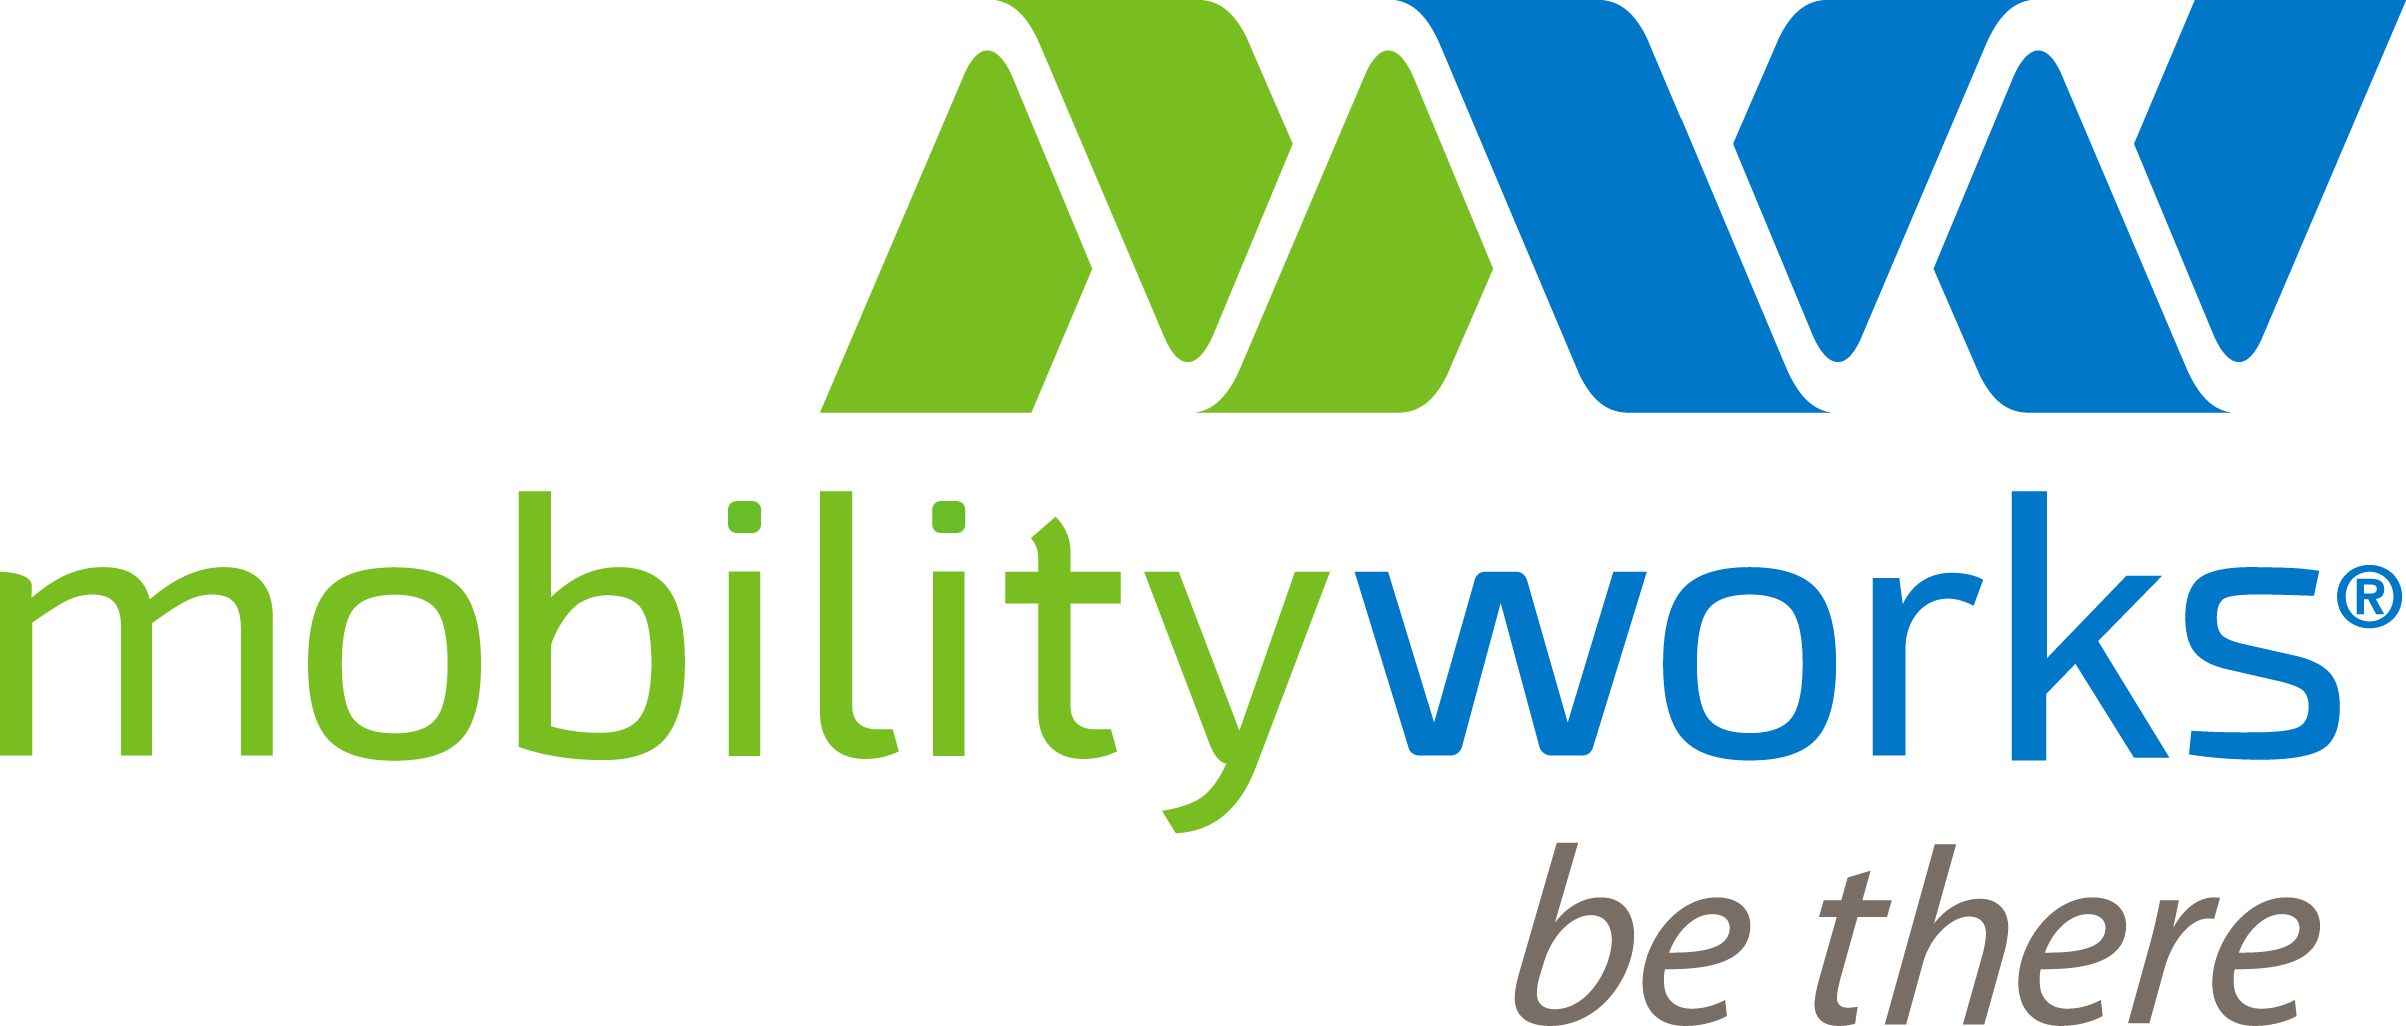 Mobility Works_00.jpg